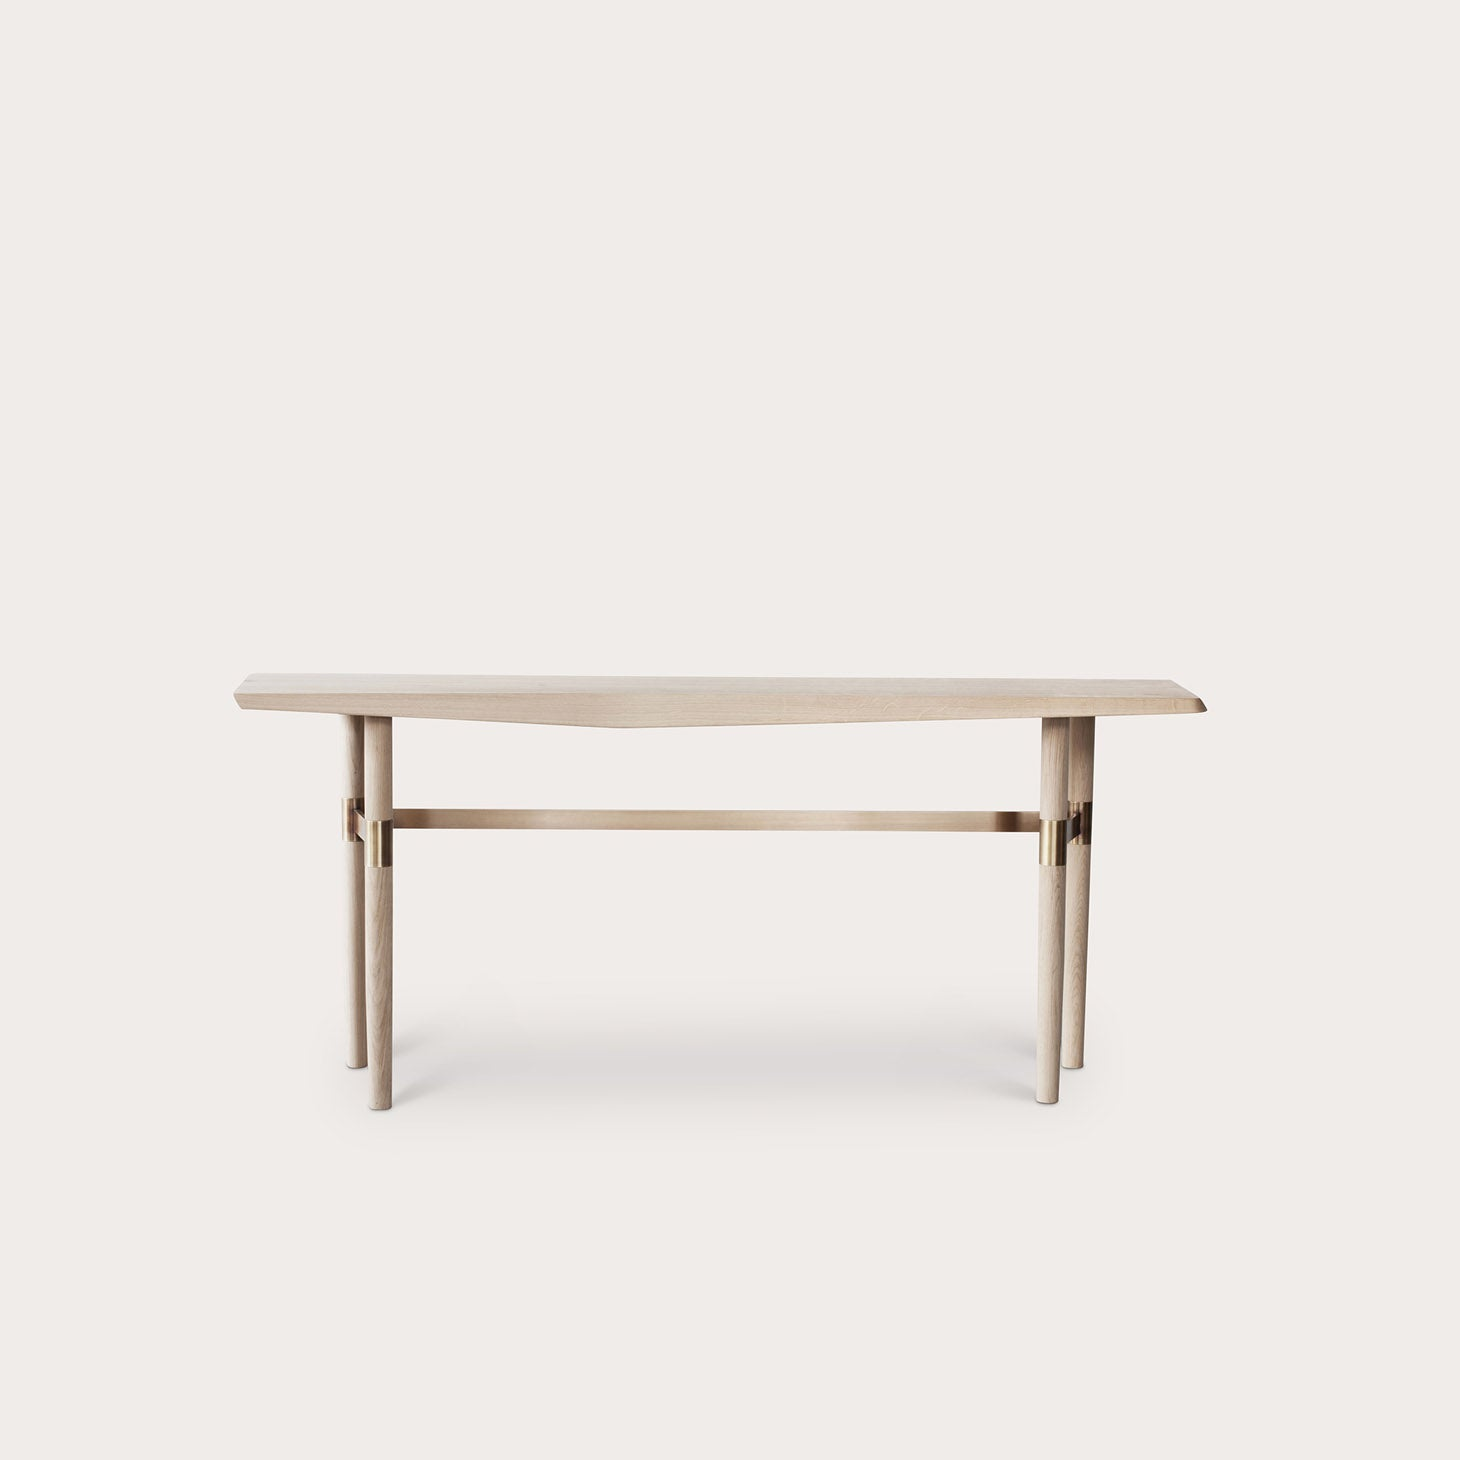 Darling Point Tables Yabu Pushelberg Designer Furniture Sku: 416-230-10109